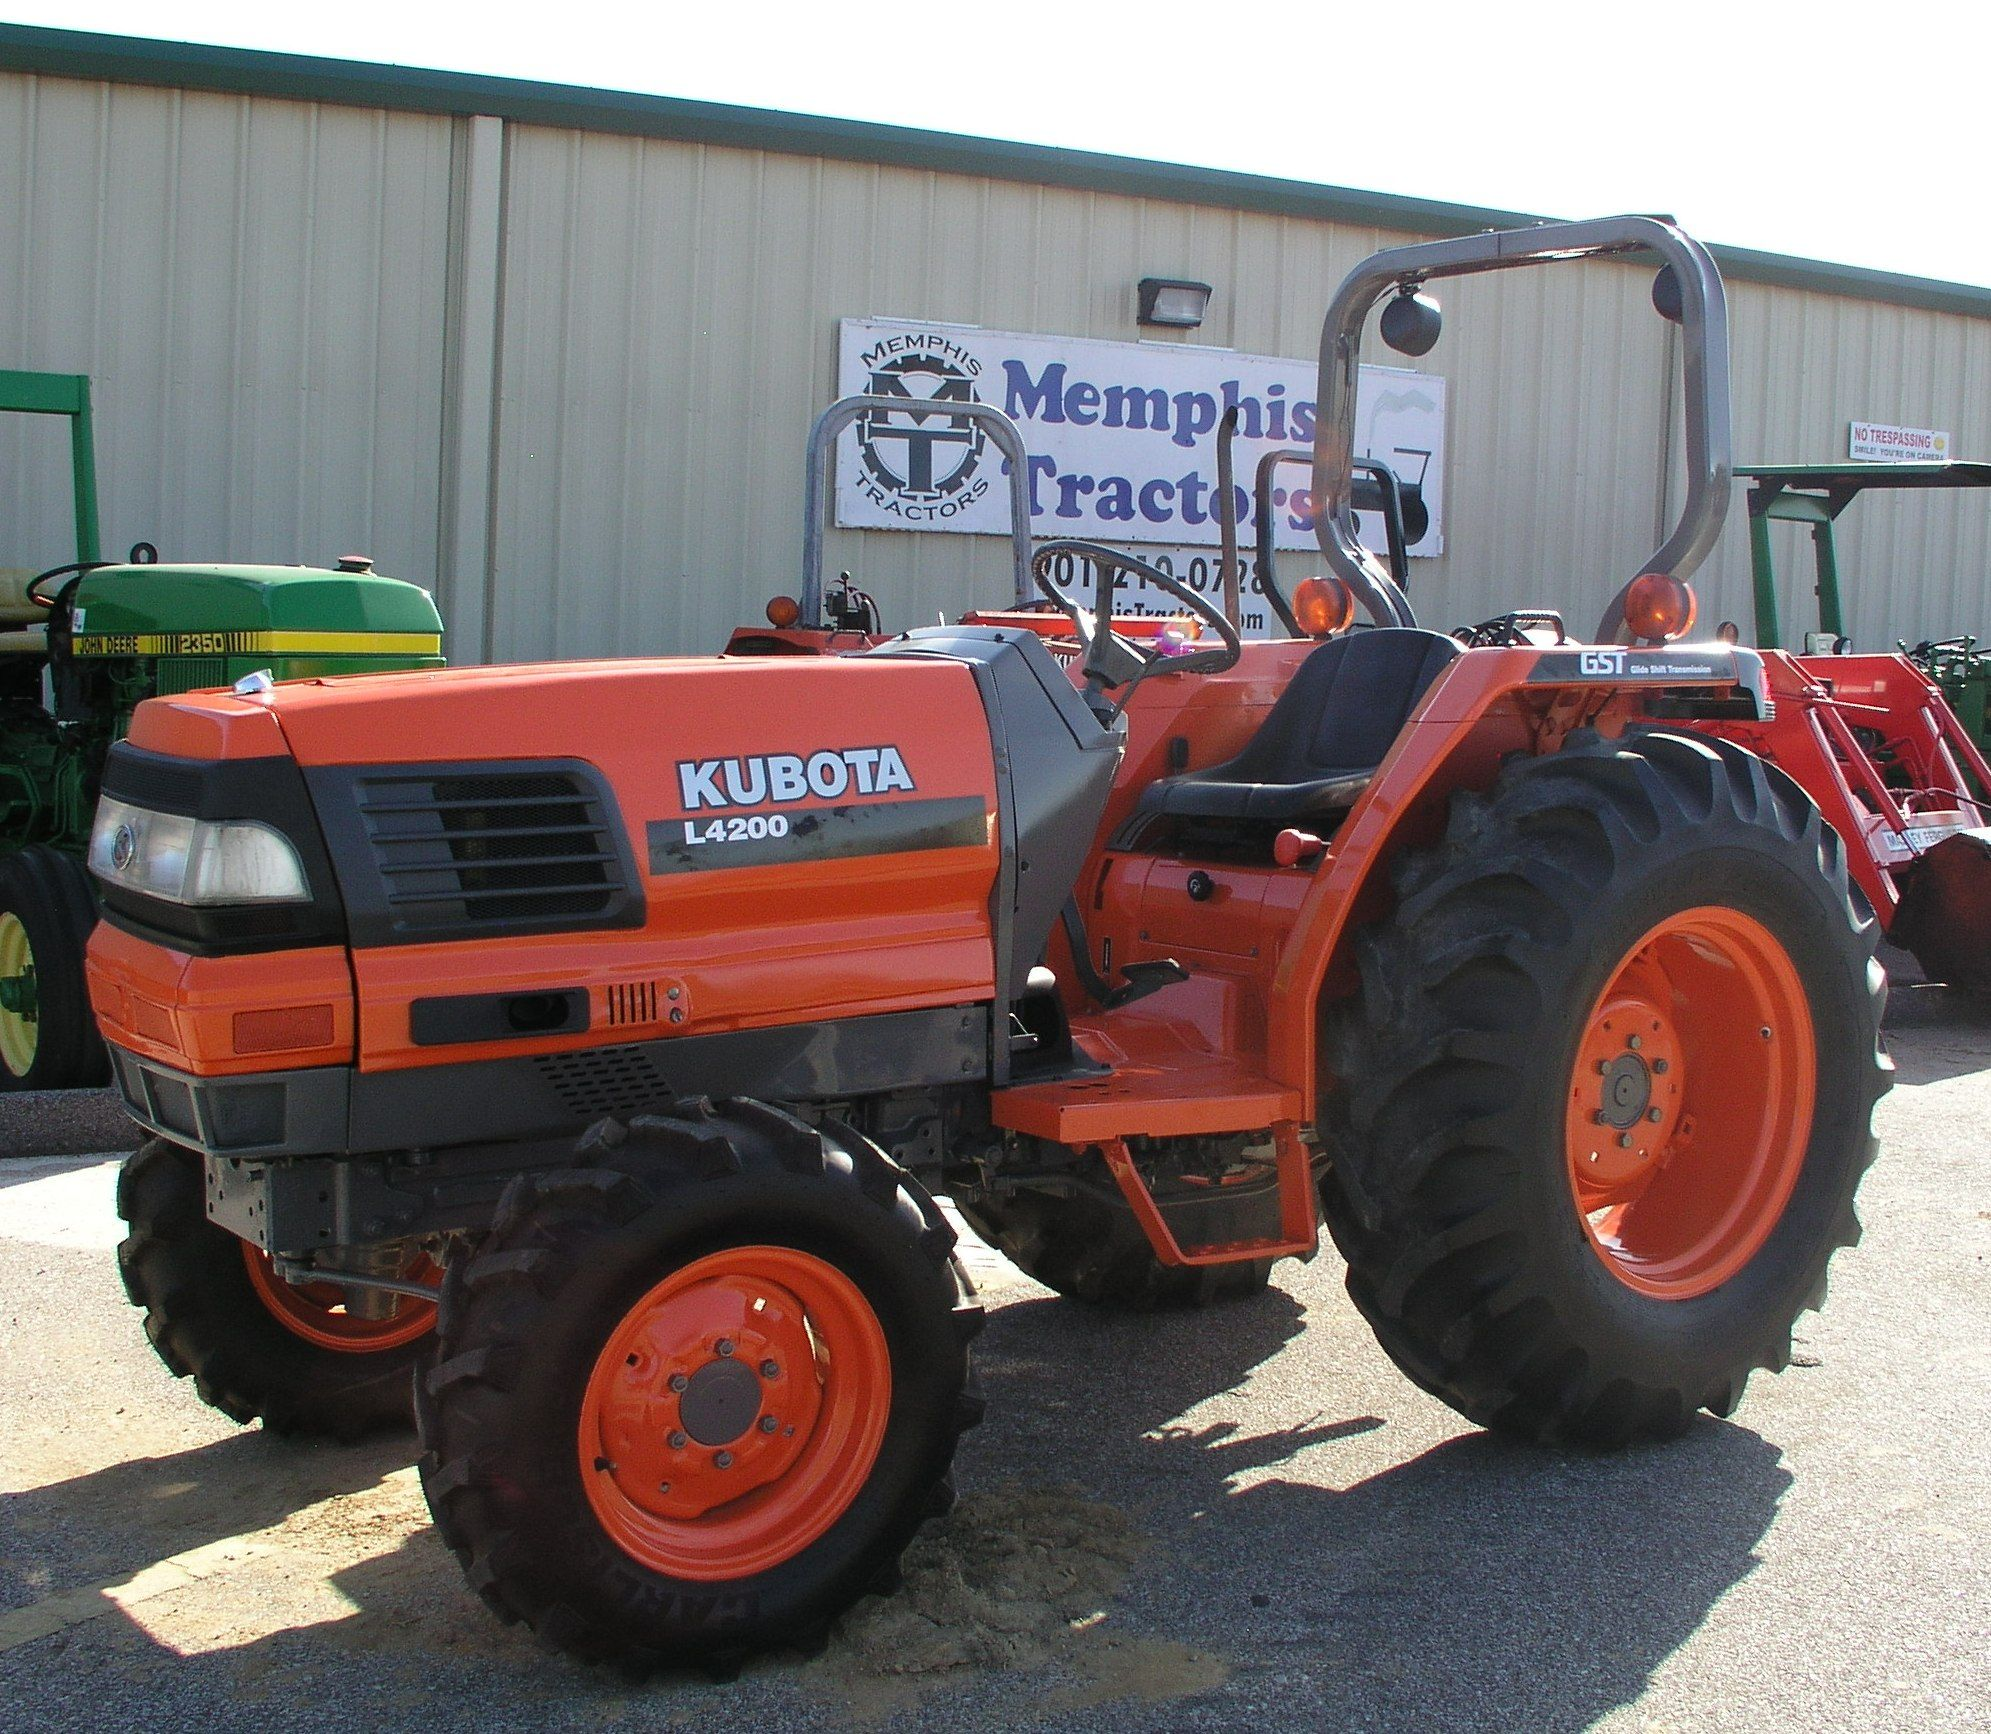 kubota l4200 tractor mania pinterest tractor and kubota rh pinterest com Kubota L3901 Tractor Cover Kubota L3901 Tractor Cover